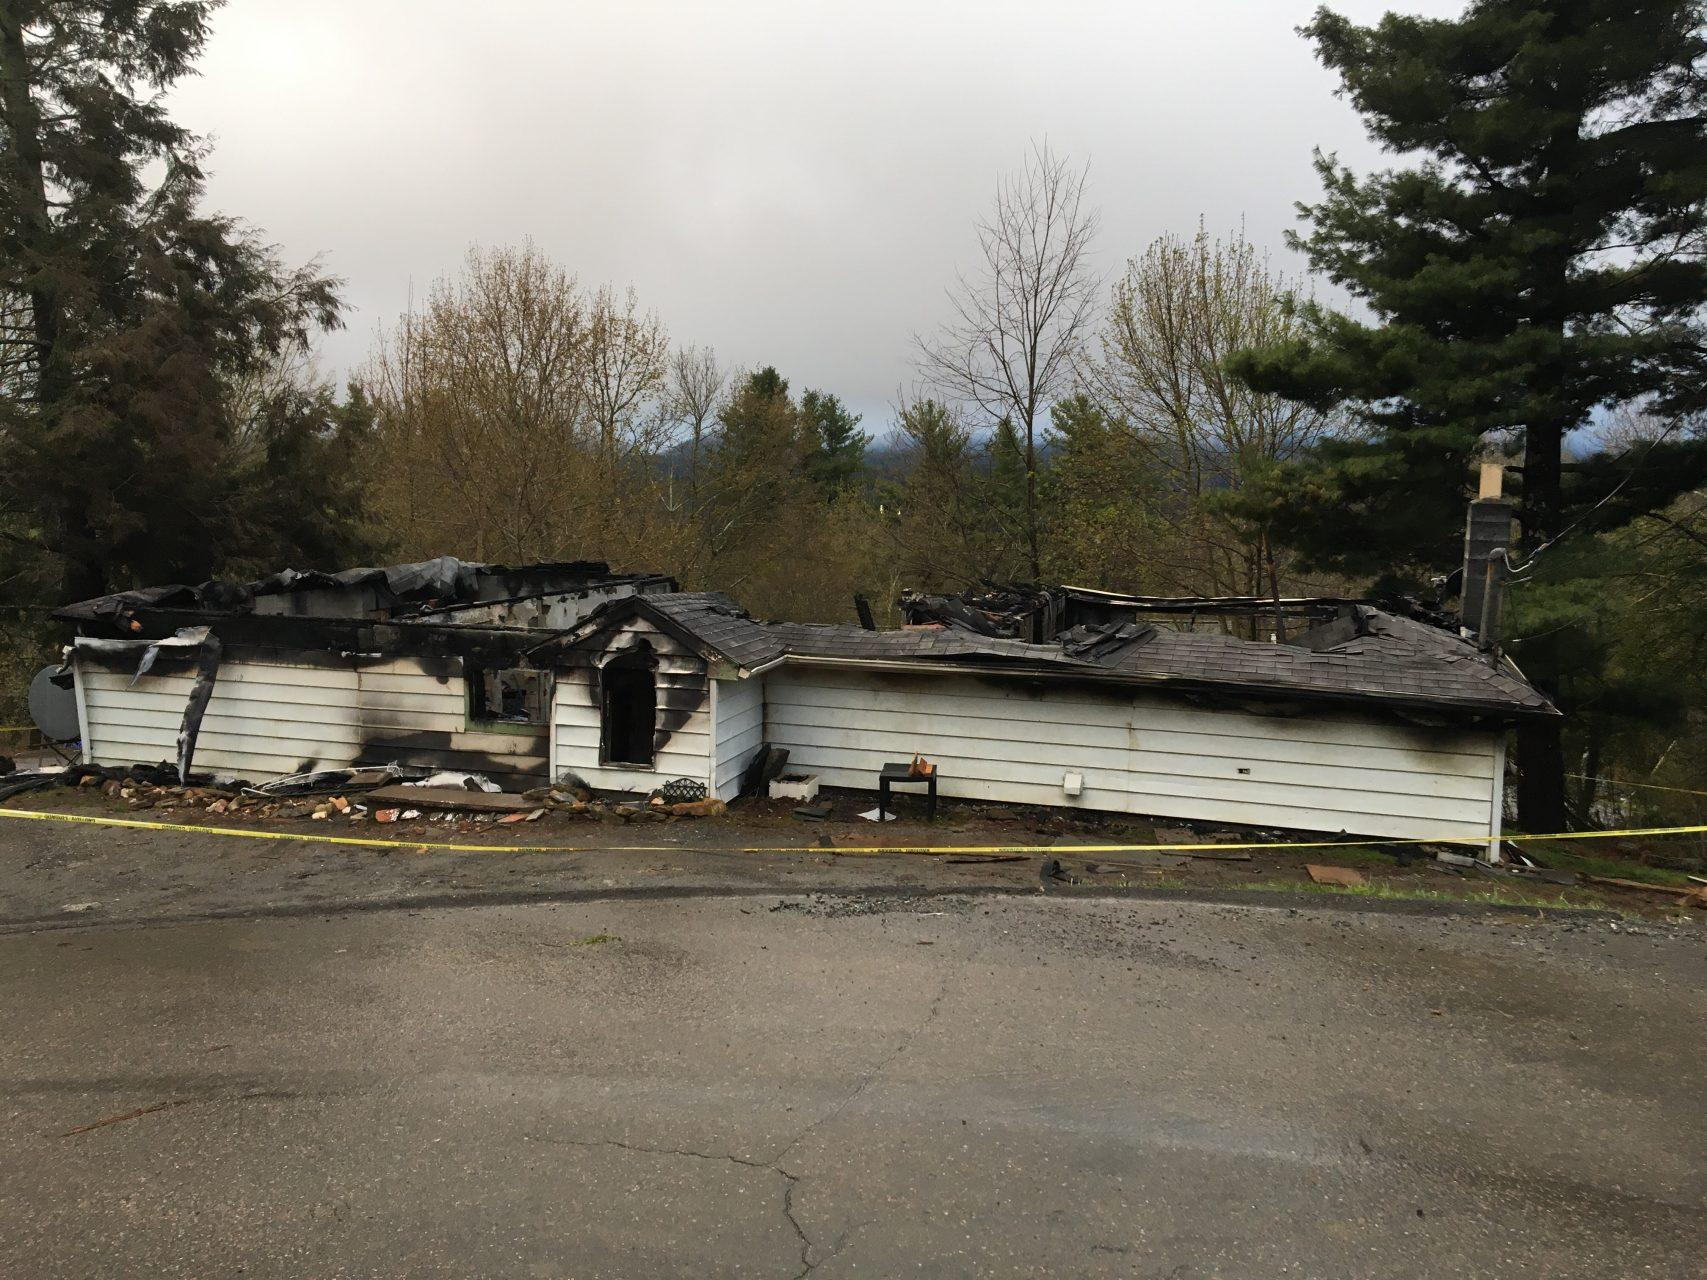 All that remains of 619 Junaluska Road as seen from the road.